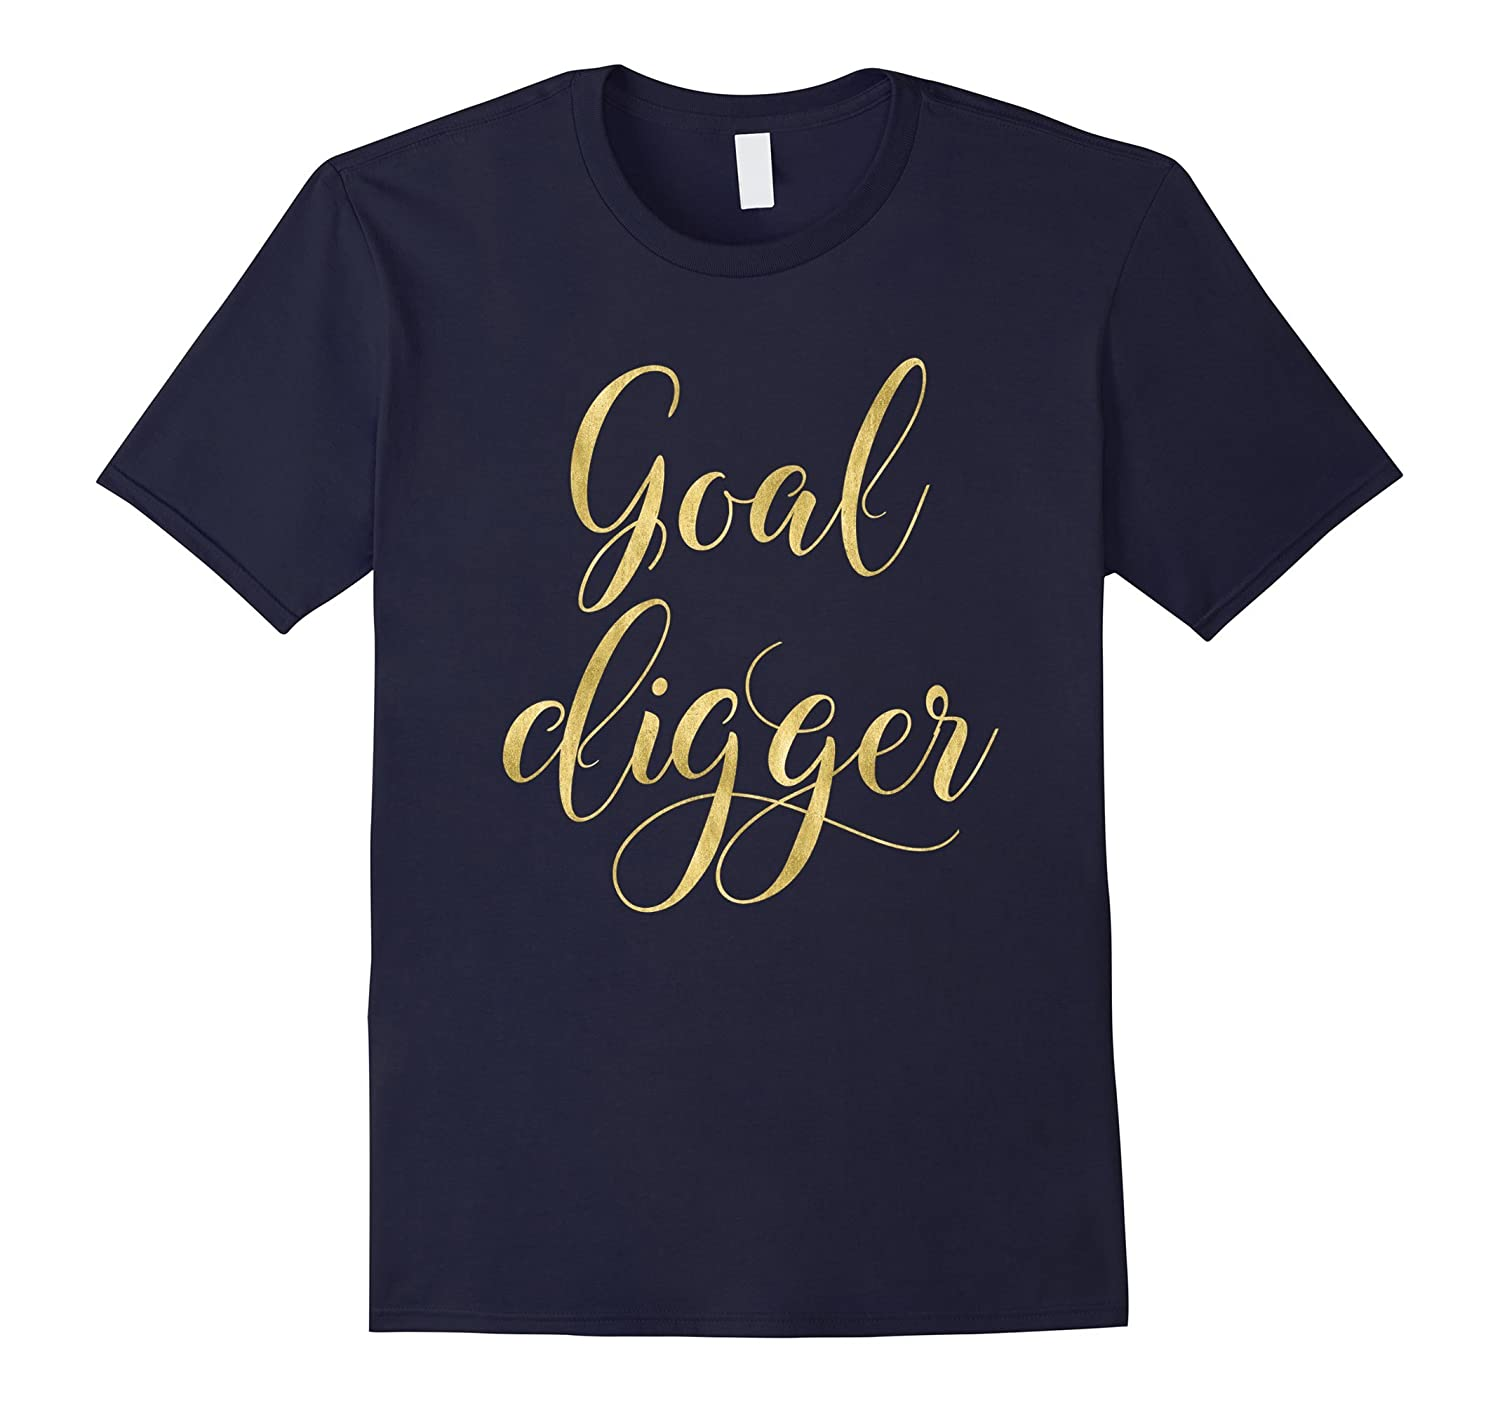 Goal Digger T-shirt Gold Effect Lettering Motivational-Vaci